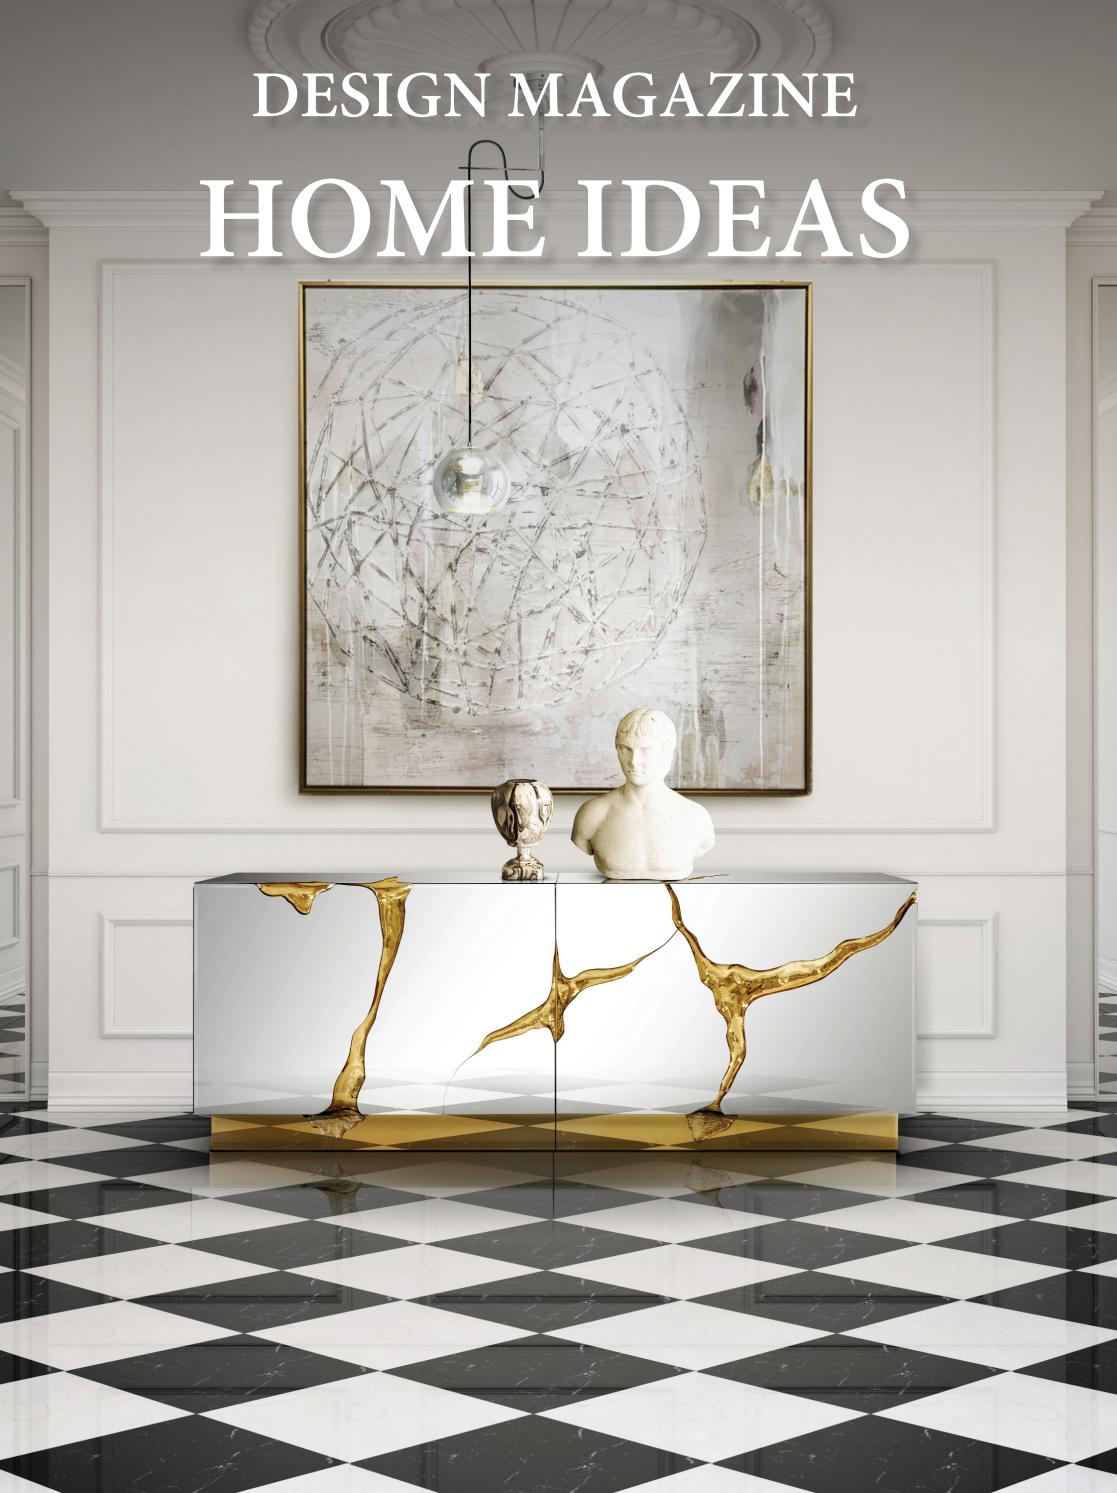 Design Magazine Home Ideas By Covet House Issuu